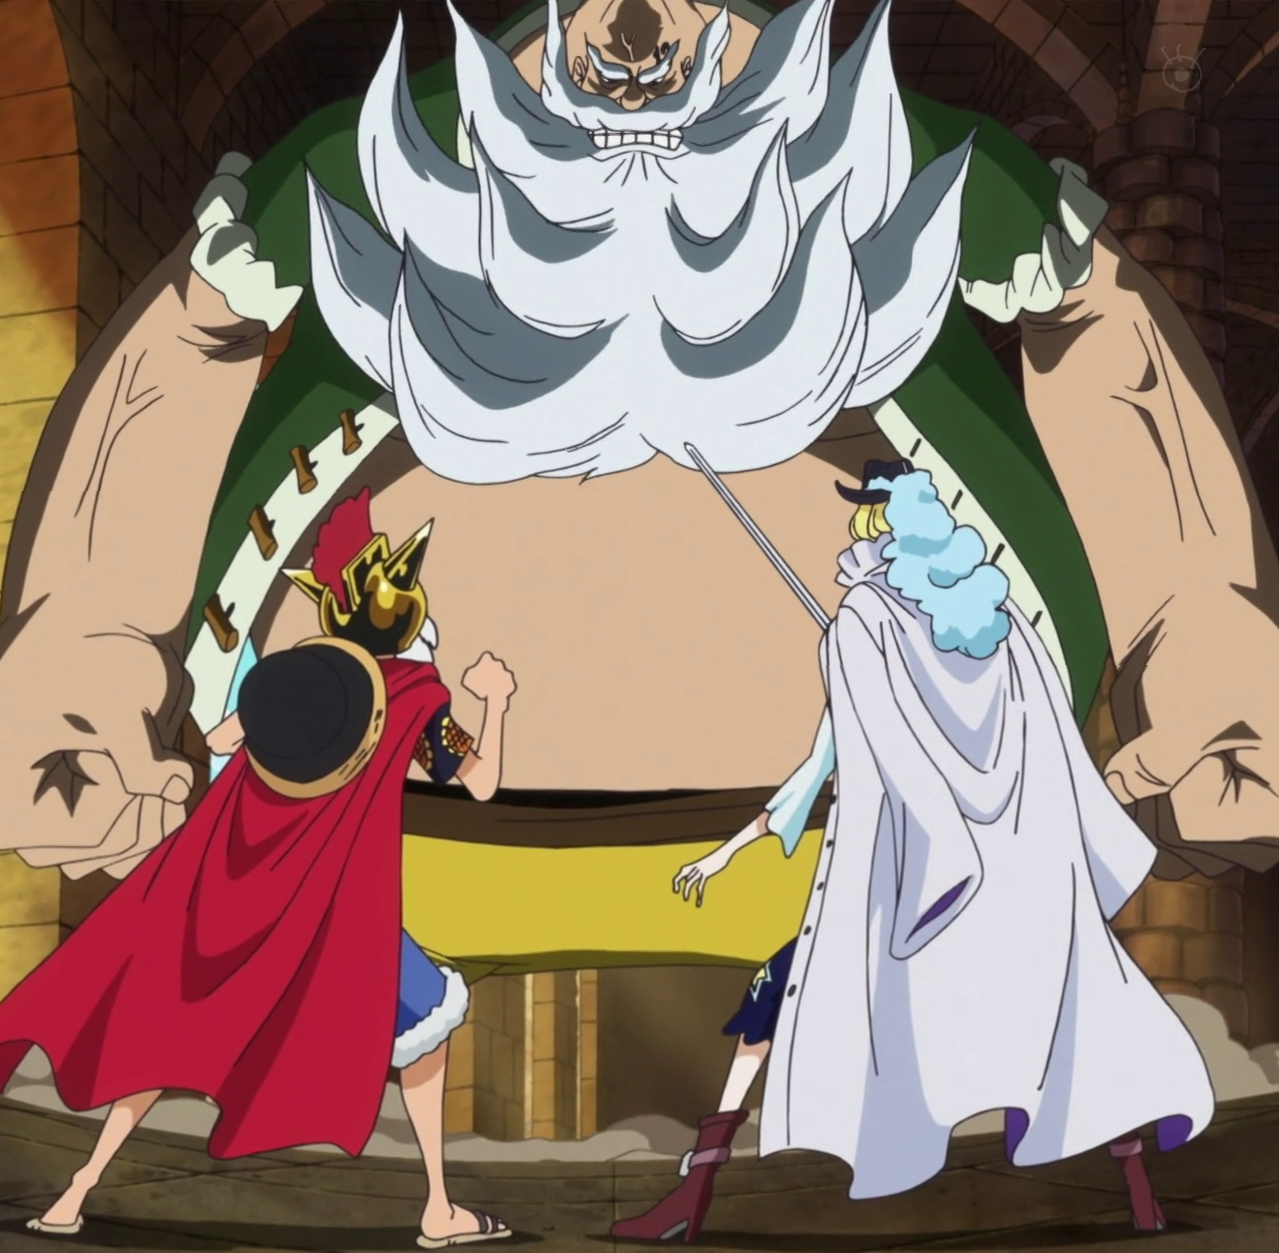 Ace And Luffy Fighting Against Marine Officers: Chinjao Vs. Cavendish Vs. Monkey D. Luffy